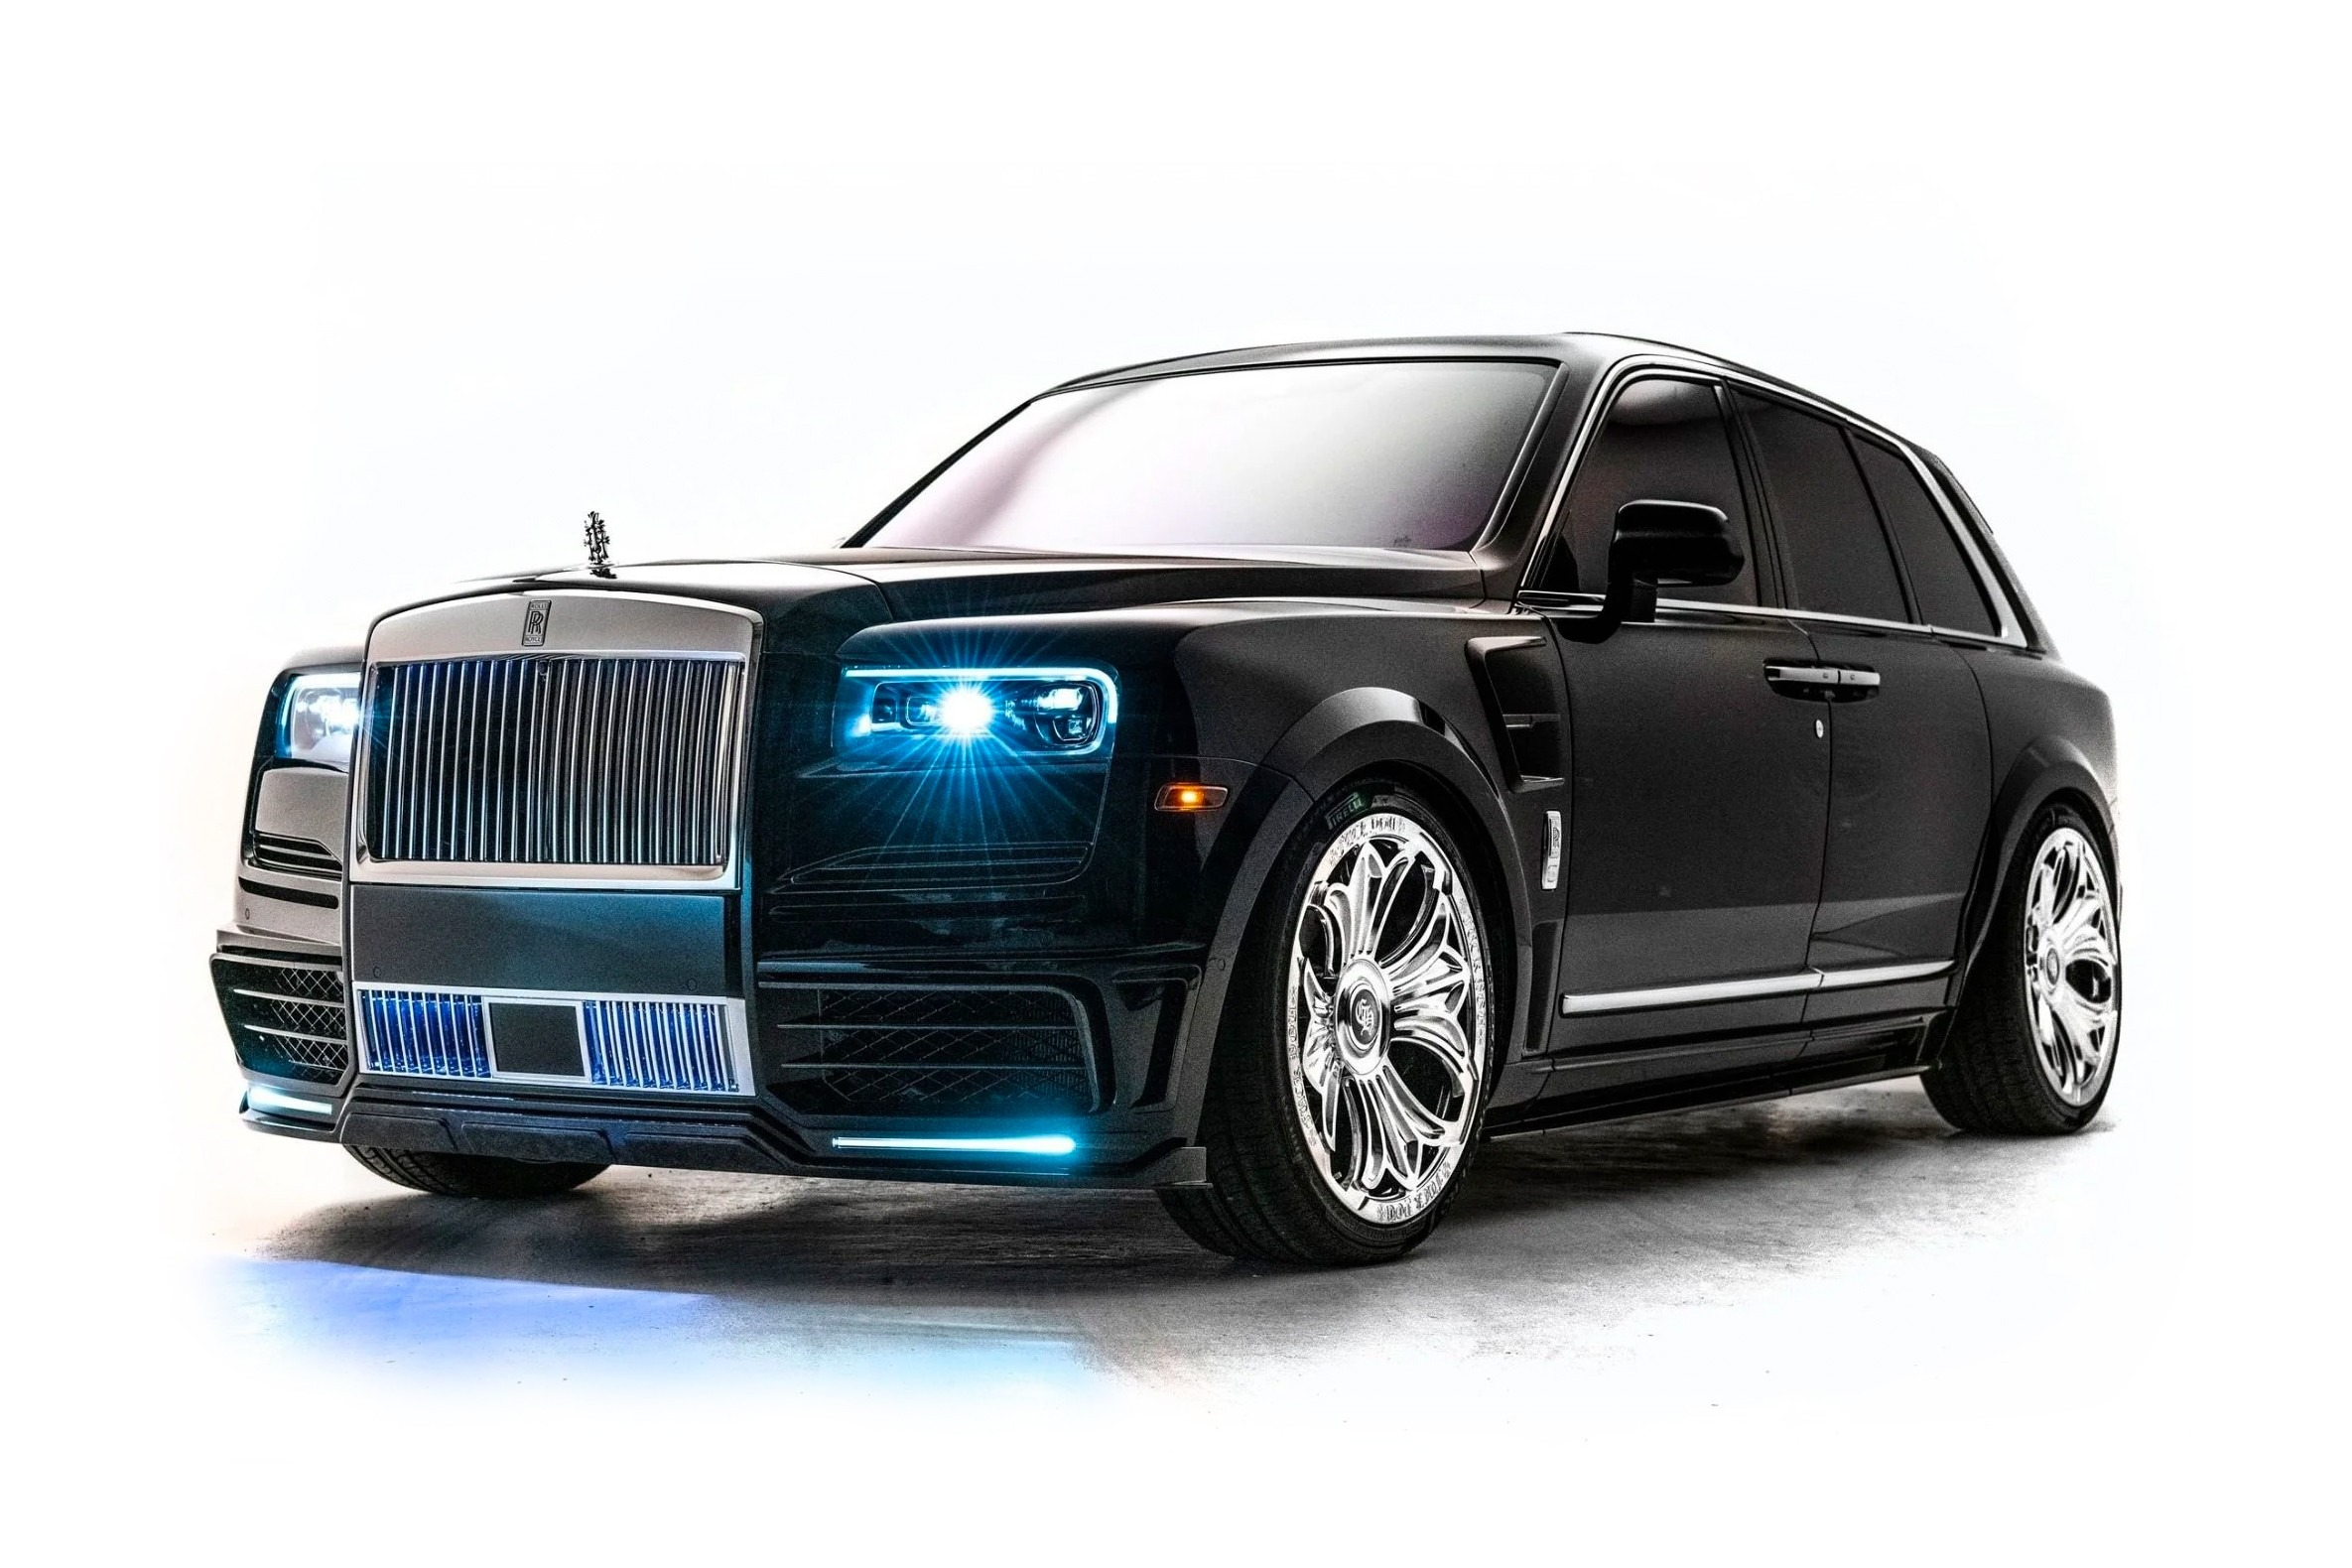 Visitors of the Miami Museum of Contemporary Art will be able to have a good look at this unique Rolls-Royce Cullinan owned by Canadian rapper Drake. The car will stay on display until May 15, 2021.